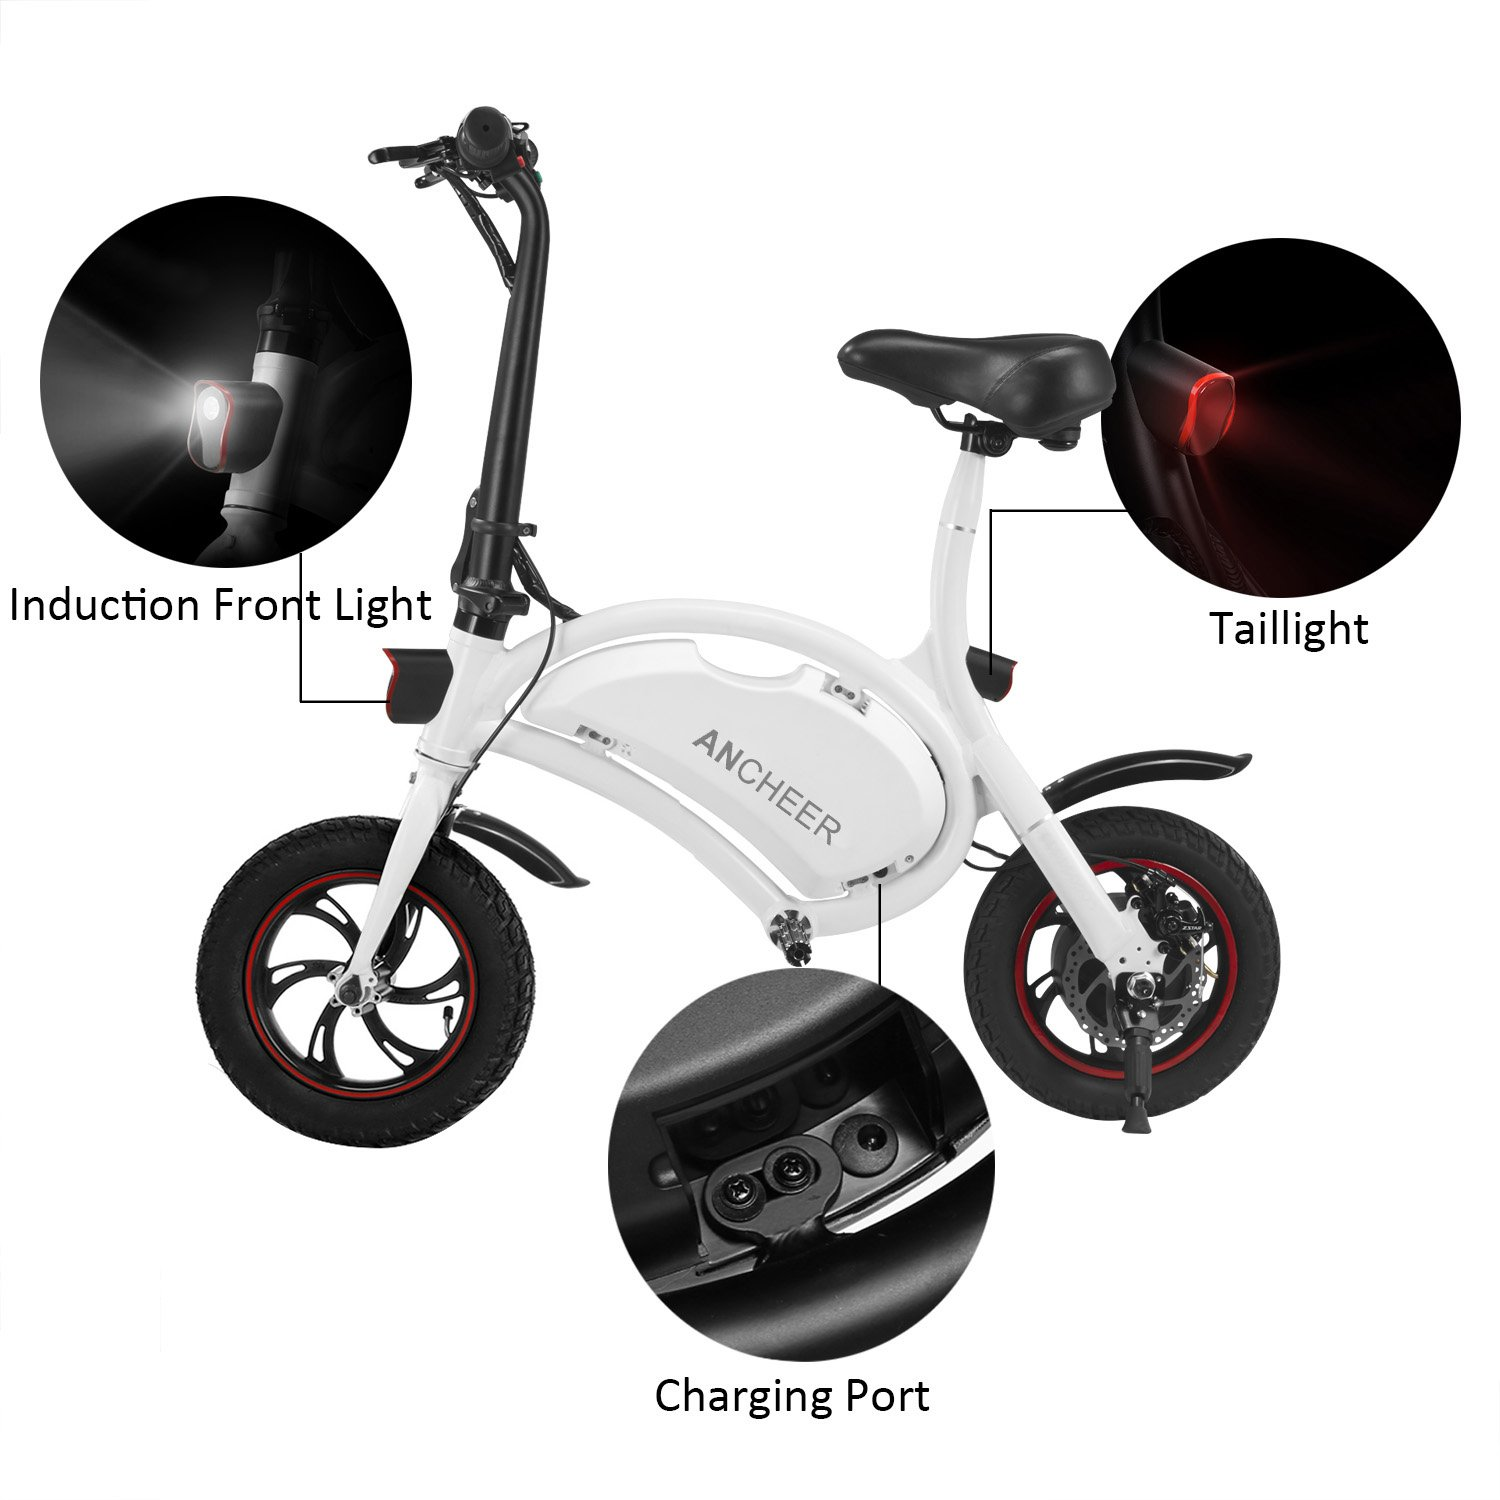 REVIEW ANCHEER Folding Electric Bicycle E-Bike Scooter 350W Powerful Motor Waterproof Ebike with 12 Mile Range, APP Speed Setting | Electric Bike in Seattle WA 71WZ2C8AkUL._SL1500_